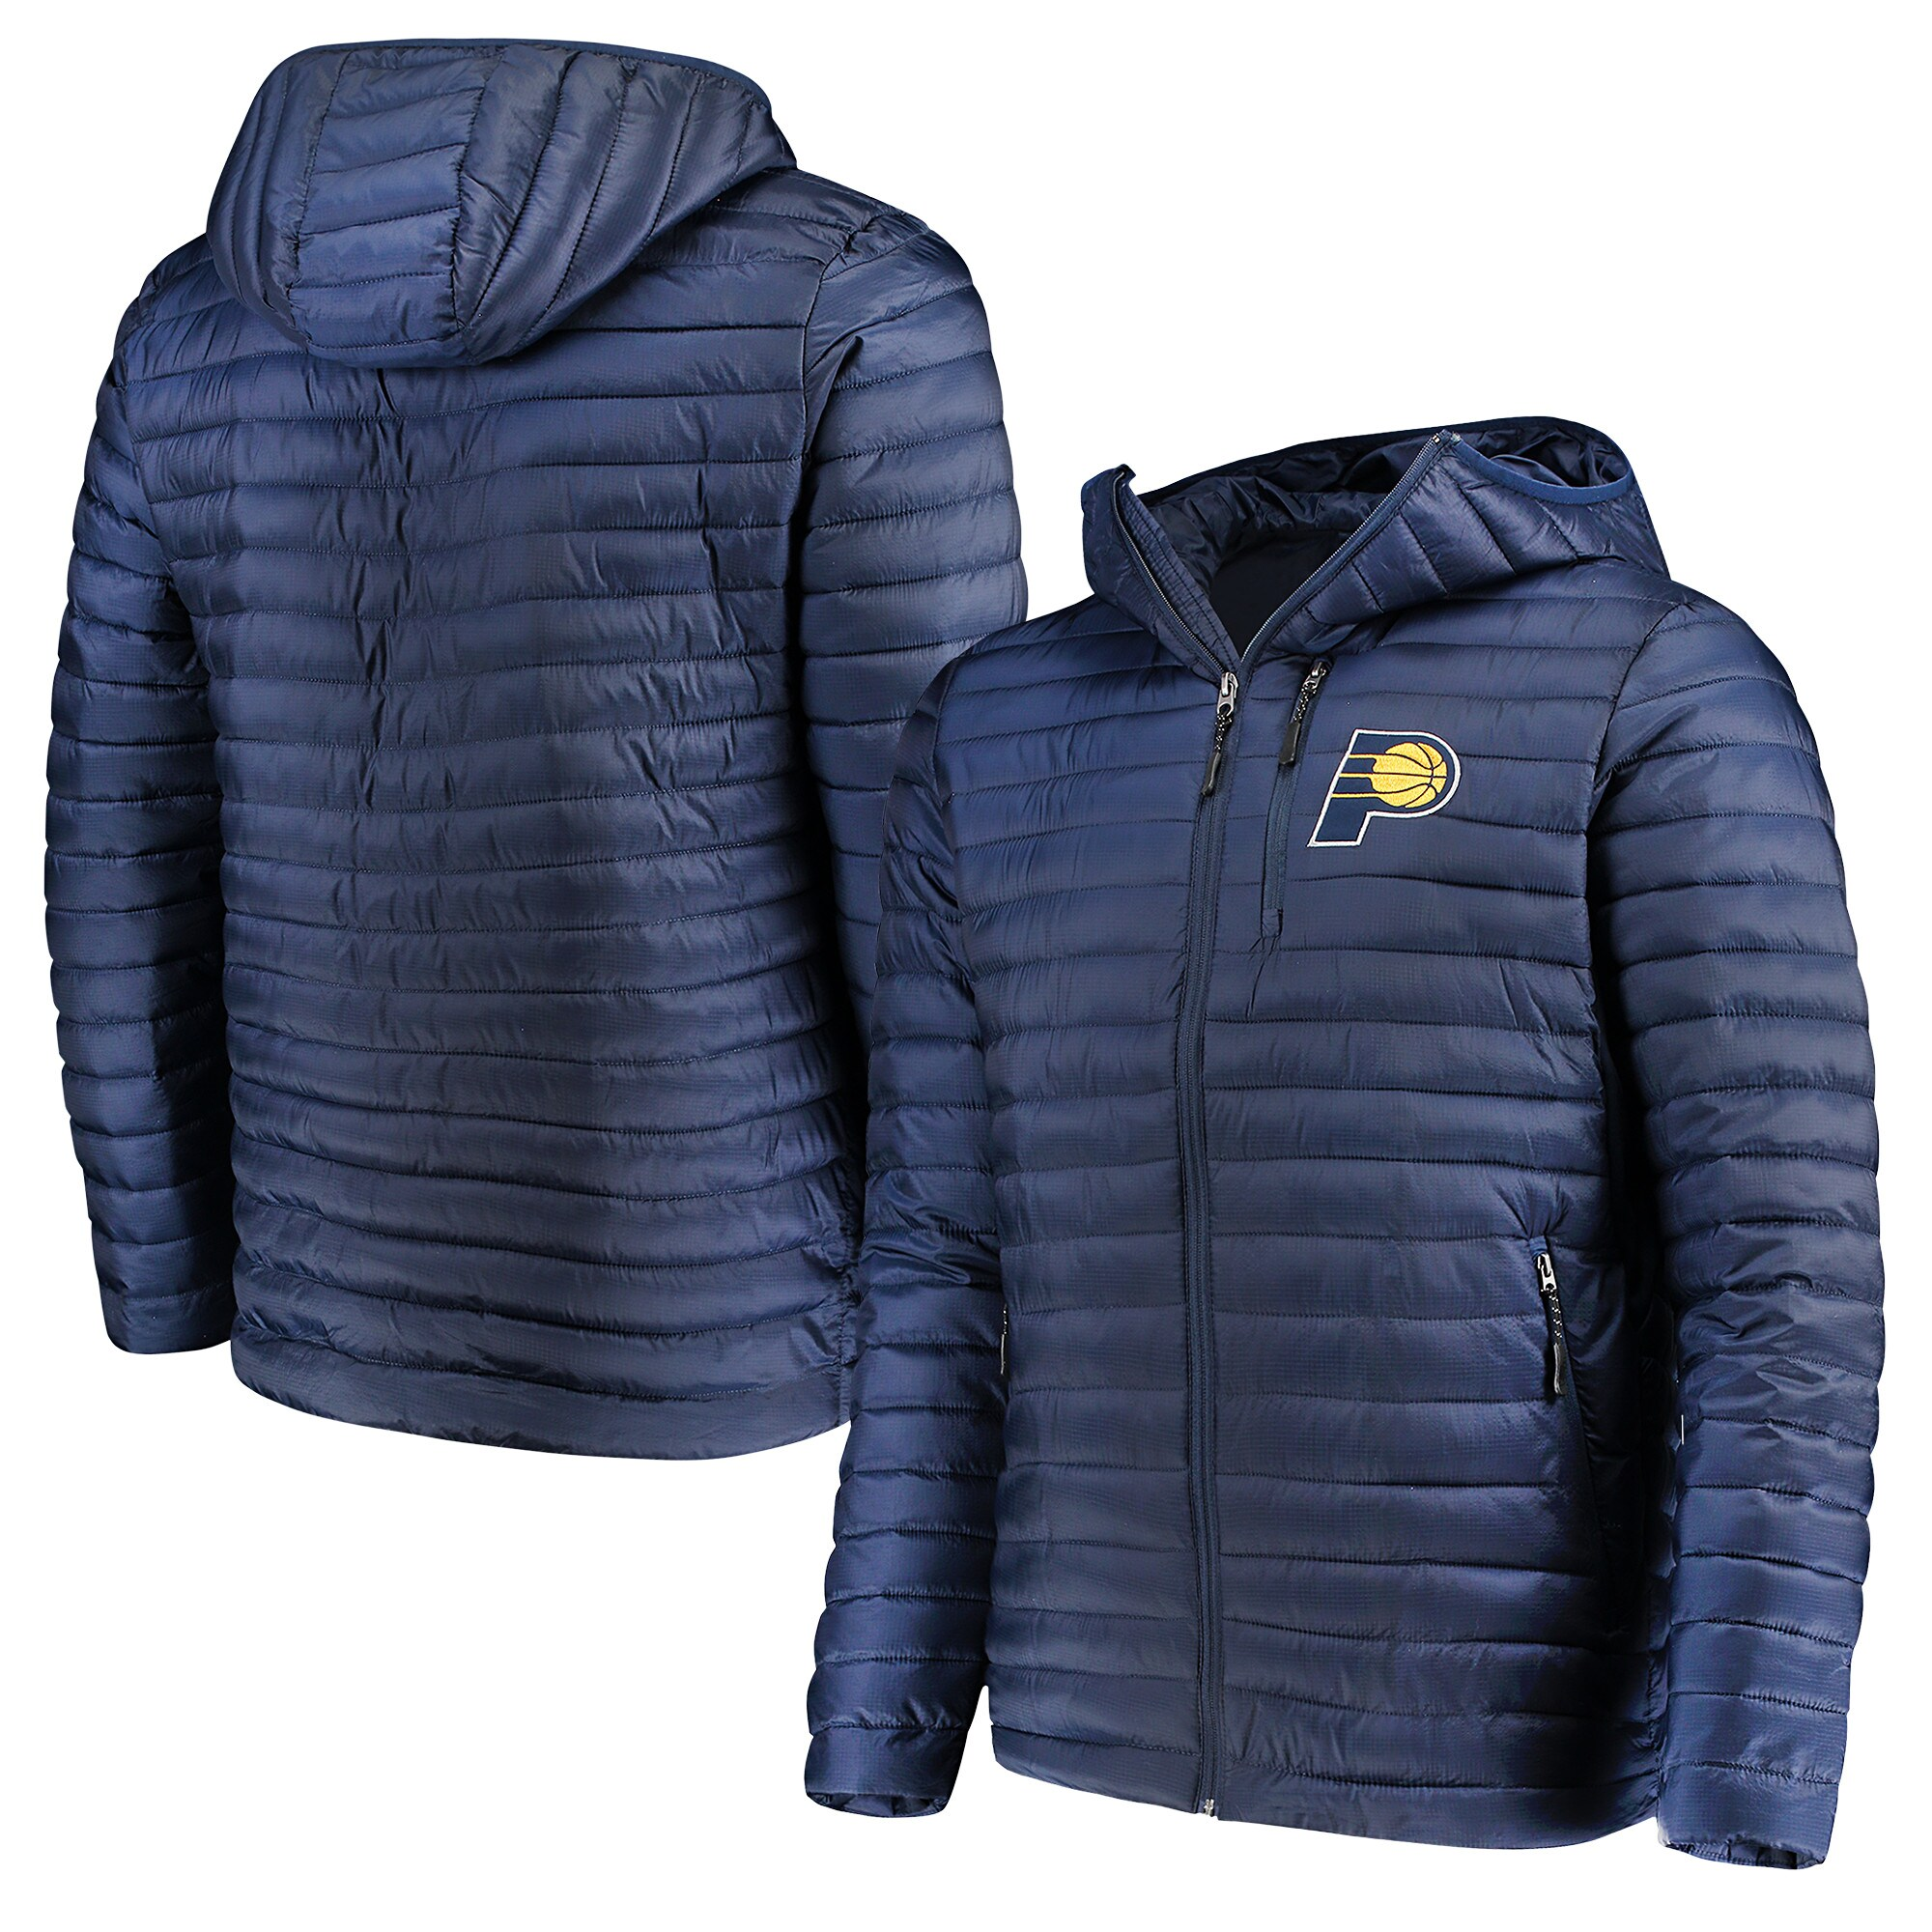 Indiana Pacers G-III Sports by Carl Banks Equator Quilted Performance Full Zip Jacket - Navy